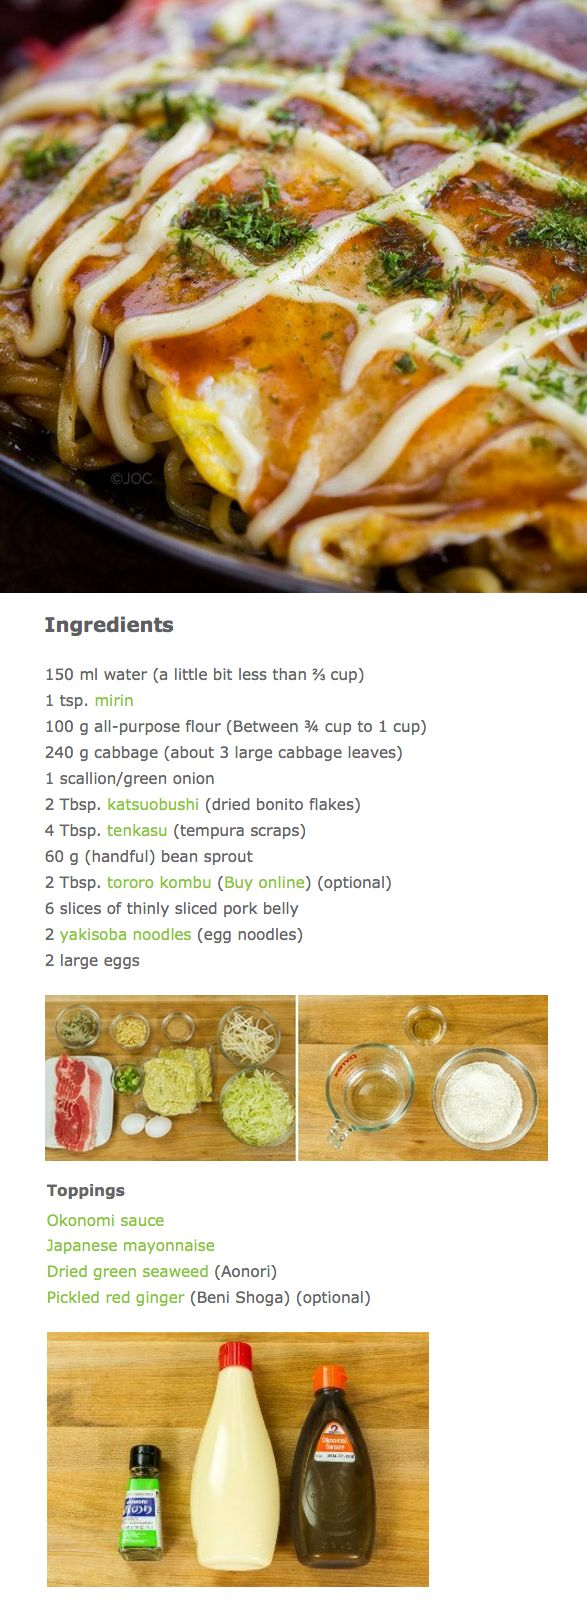 75 best all about food images on Pinterest | 11th birthday, Adult ...